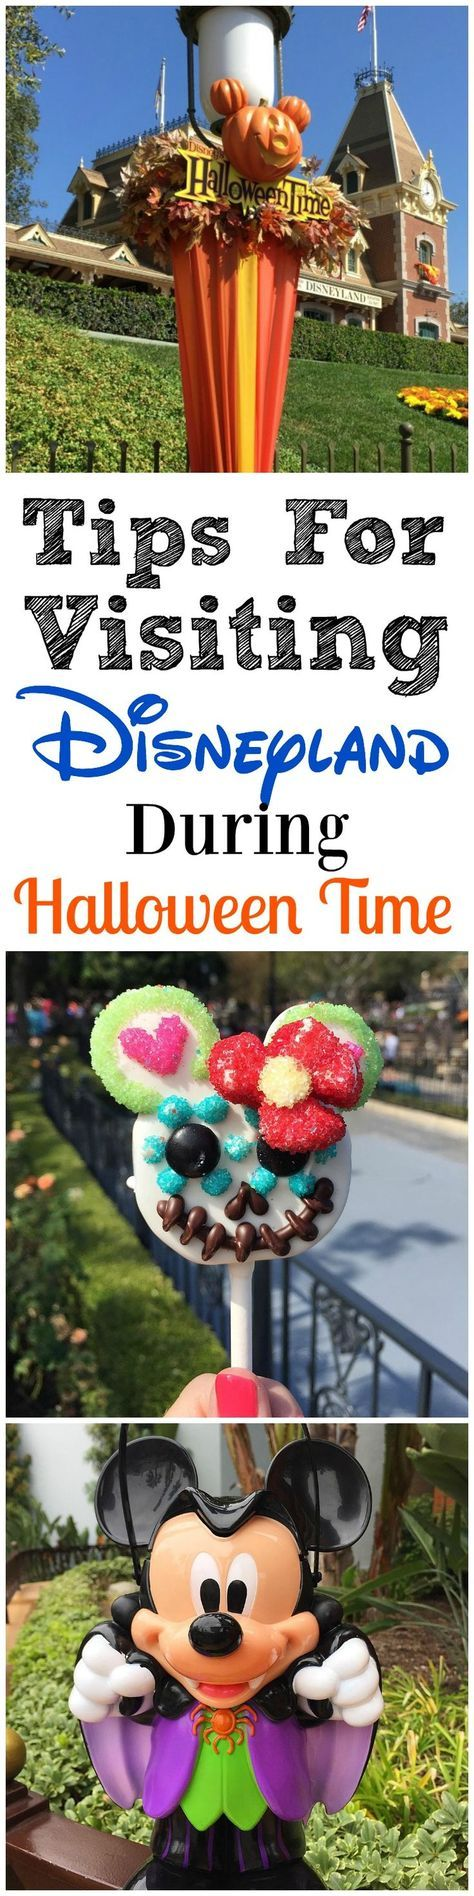 Tips For Visiting Disneyland Resort During Halloween Time!! Making the best of your Fall vacation!!